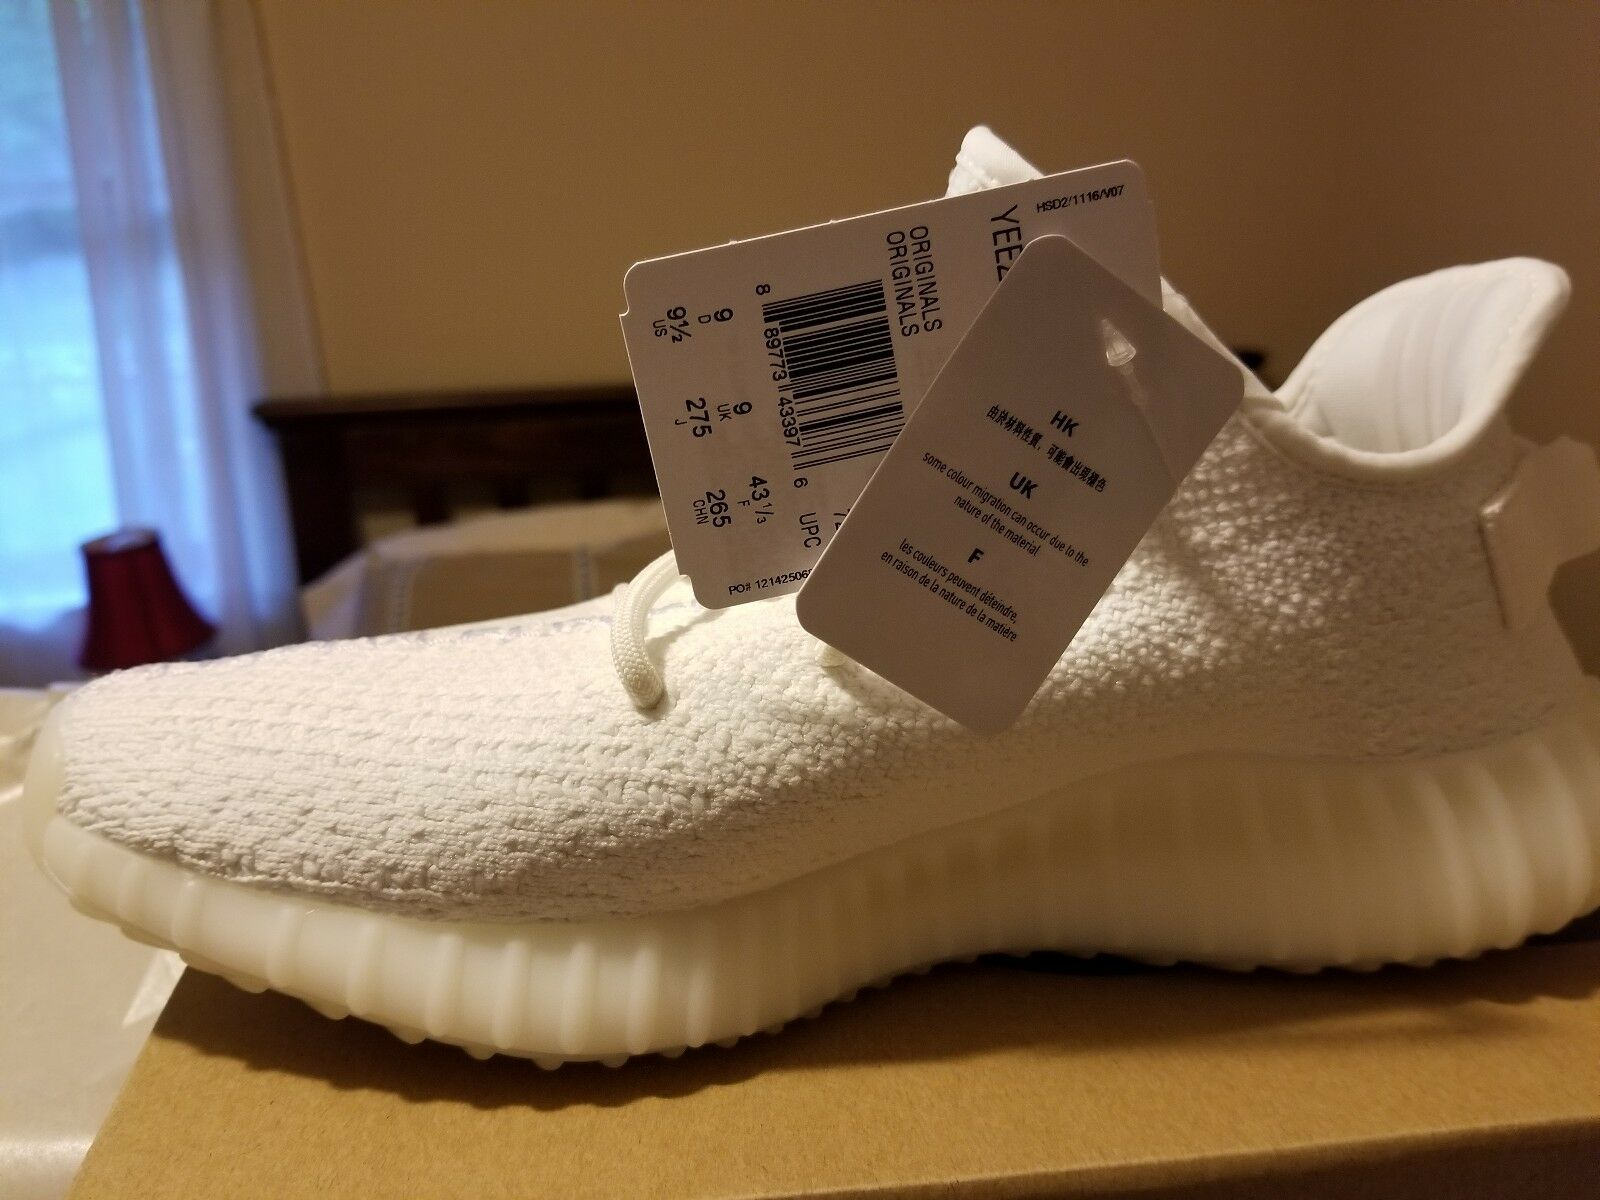 Adidas Yeezy Boost 350 V2 Triple White US SZ 9.5 - IN HAND - FAST SHIPPING